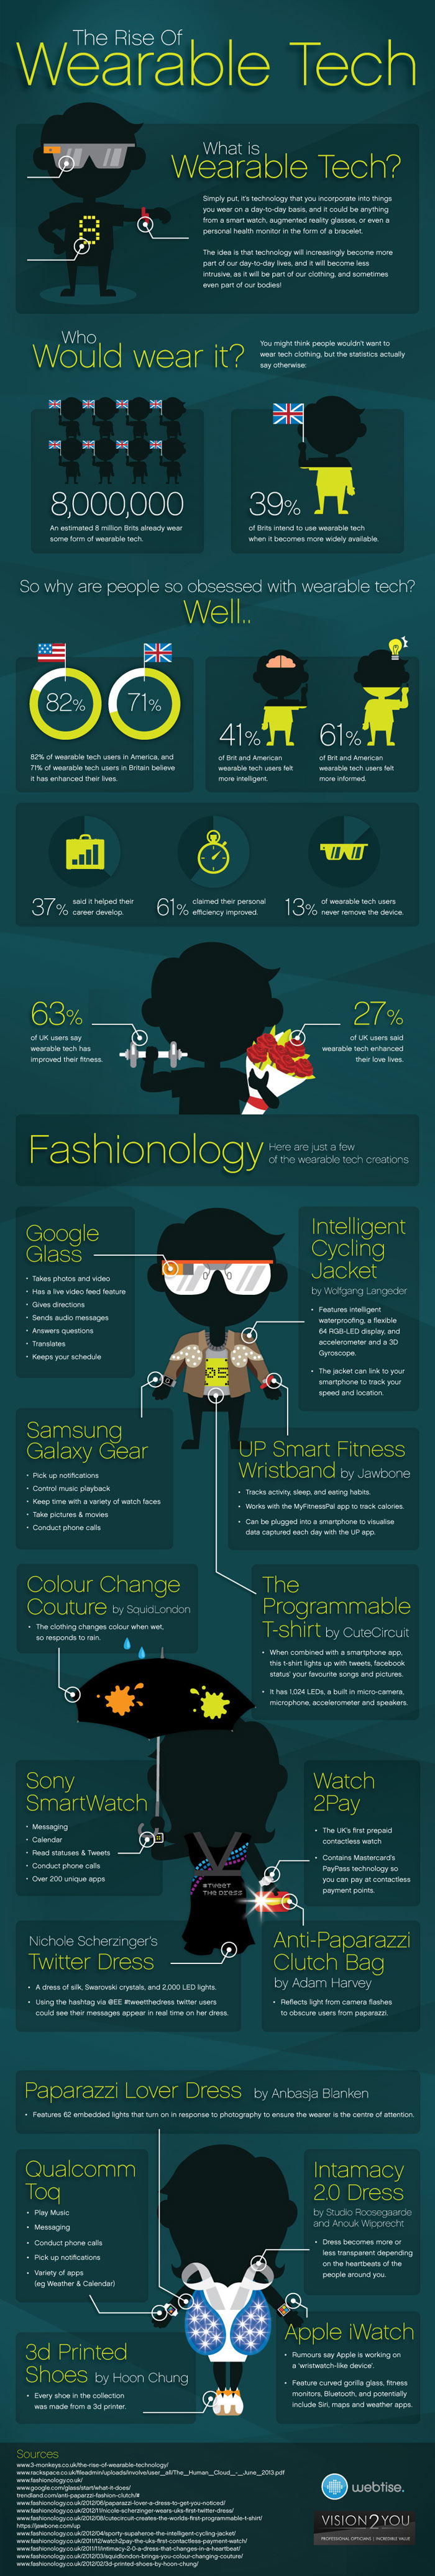 The rise of wearable technology - infographic